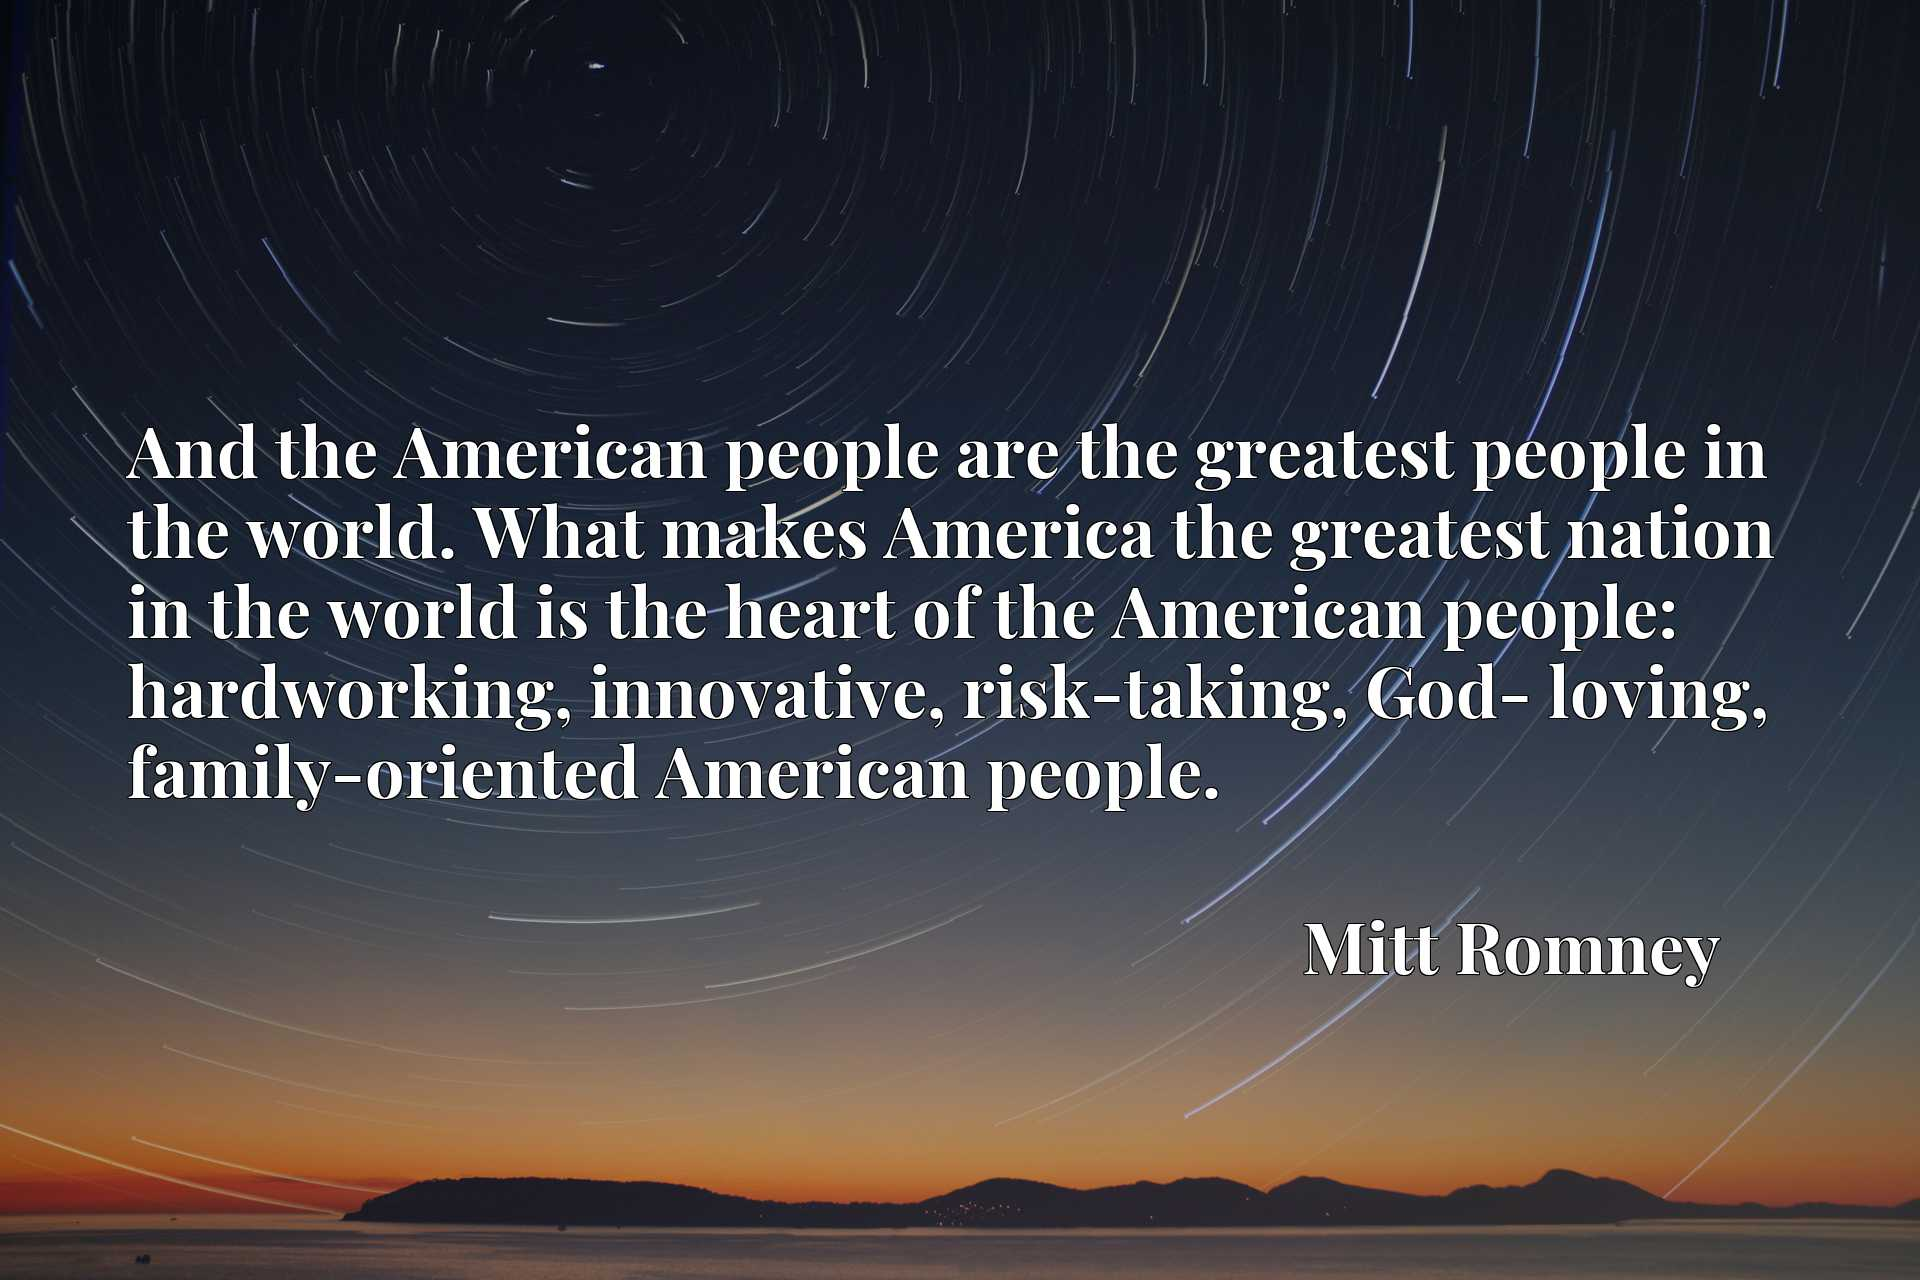 And the American people are the greatest people in the world. What makes America the greatest nation in the world is the heart of the American people: hardworking, innovative, risk-taking, God- loving, family-oriented American people.